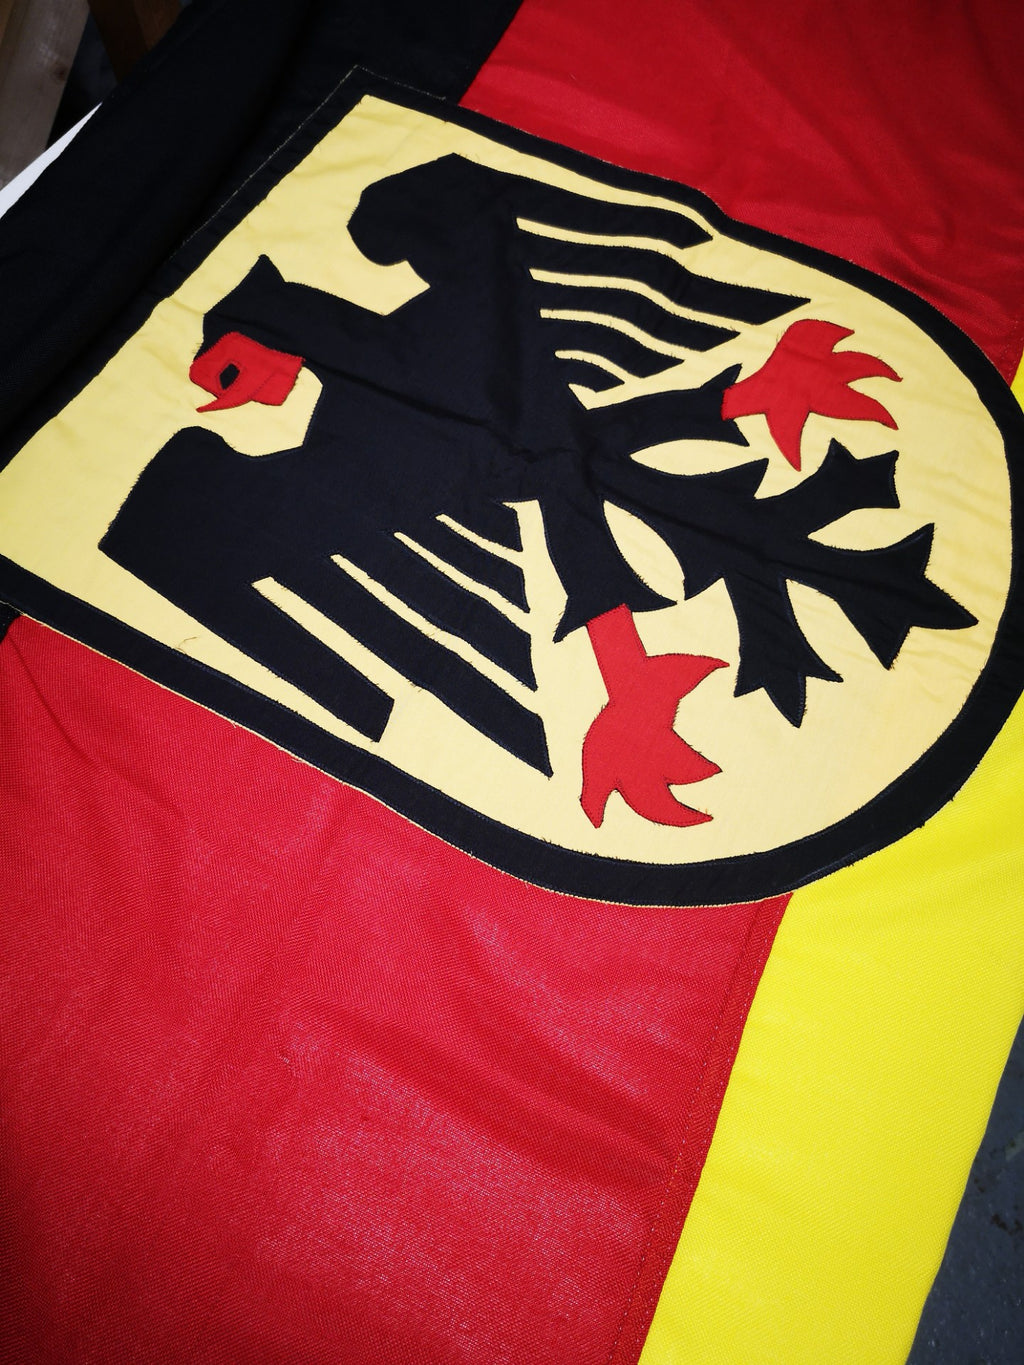 German flag with eagle